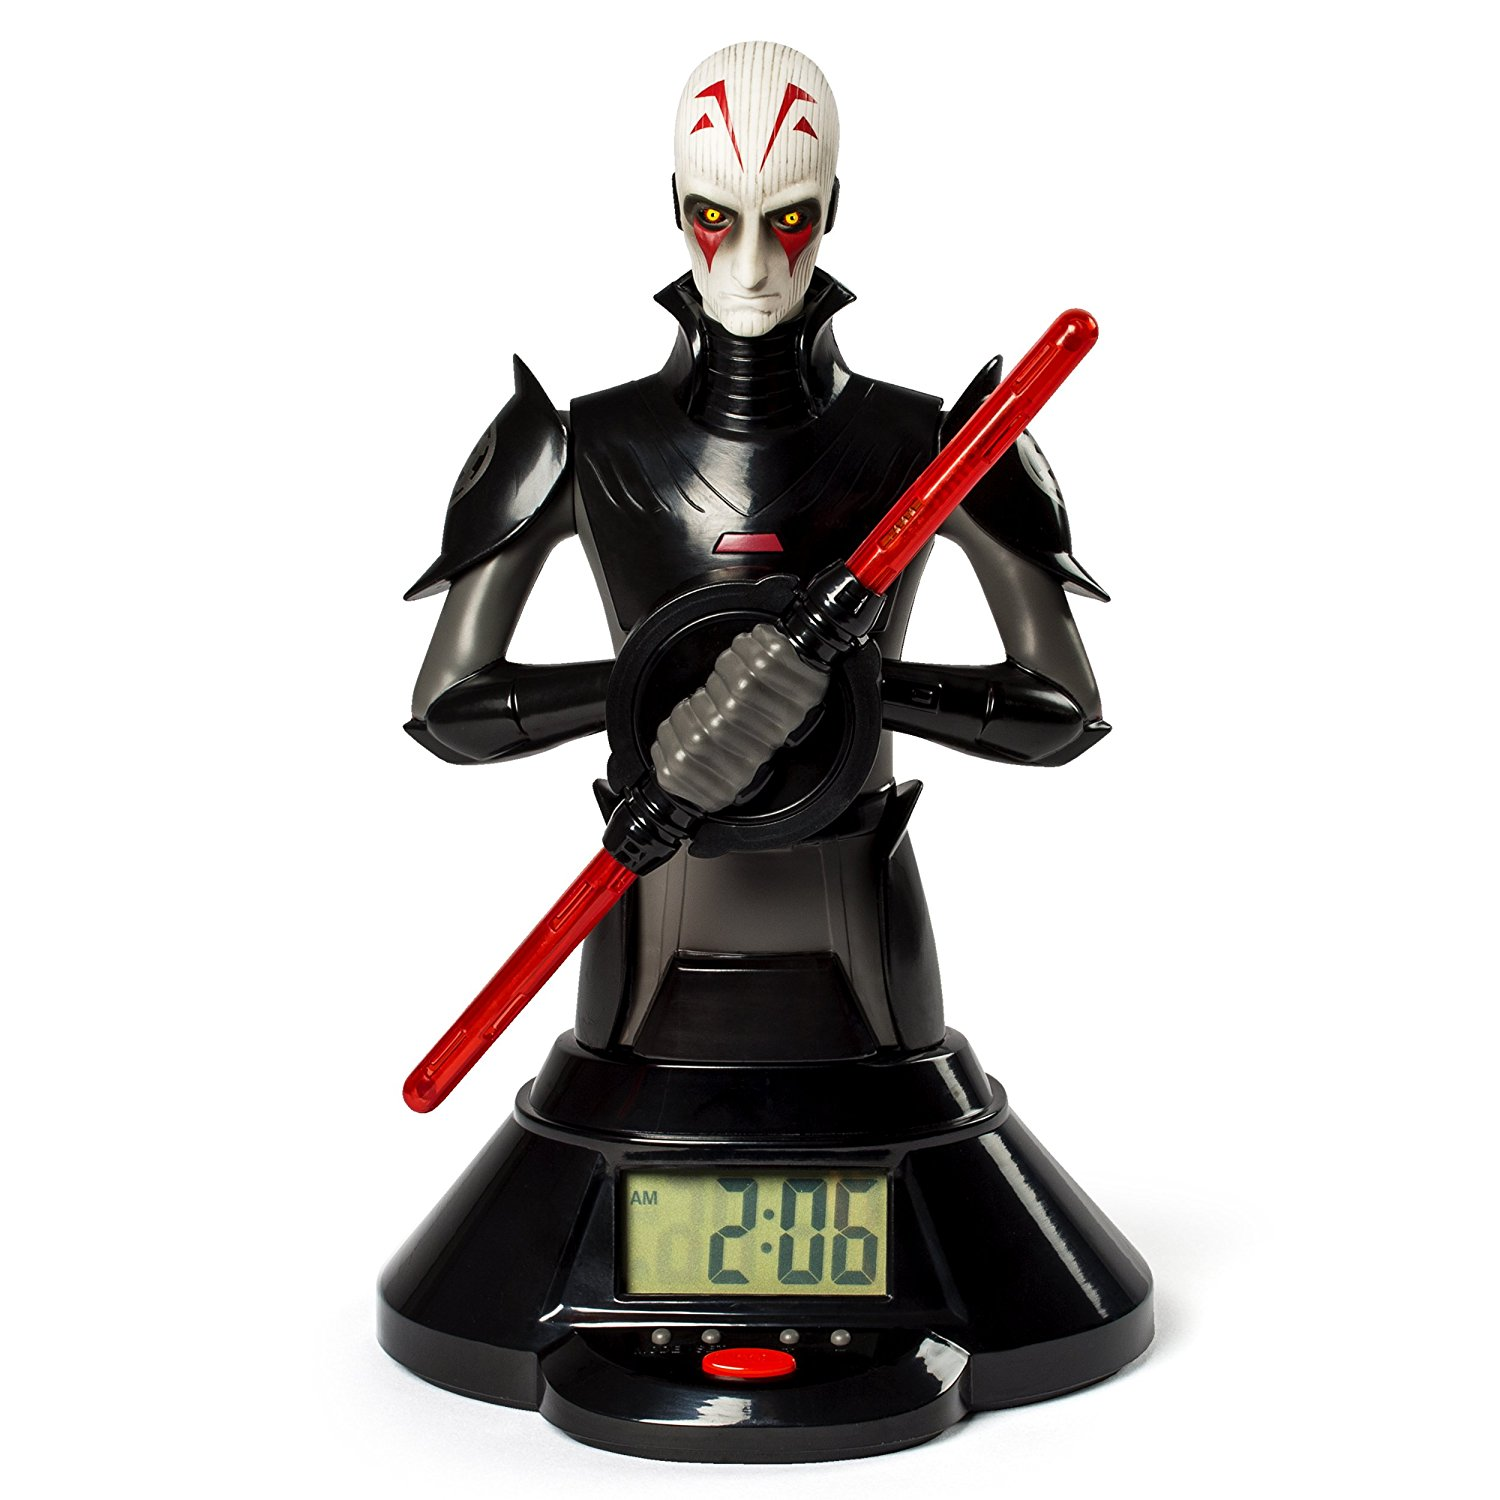 Star Wars 6025101 The Inquisitor Lightsaber Clock